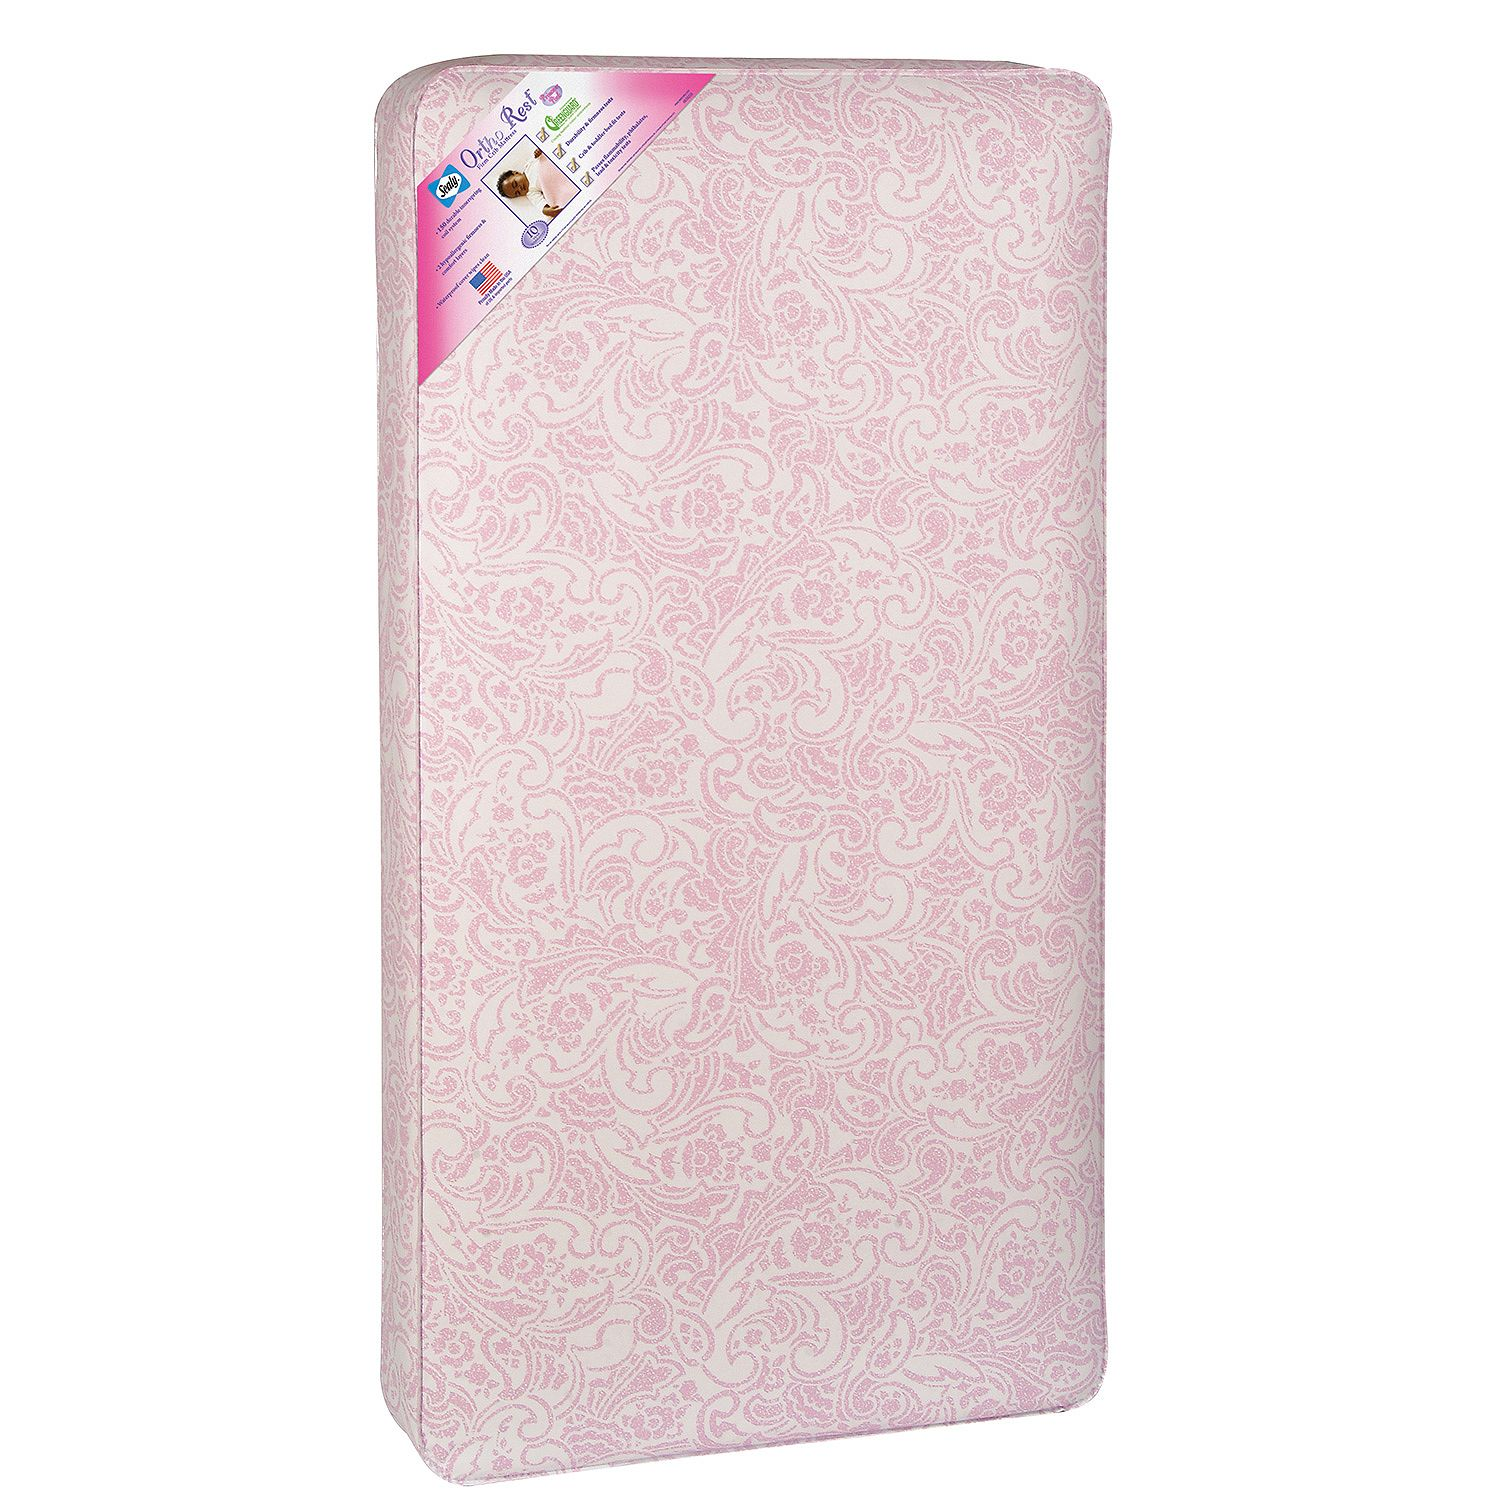 Product of Sealy Ortho Rest Crib Mattress, Pink - [Bulk Savings]